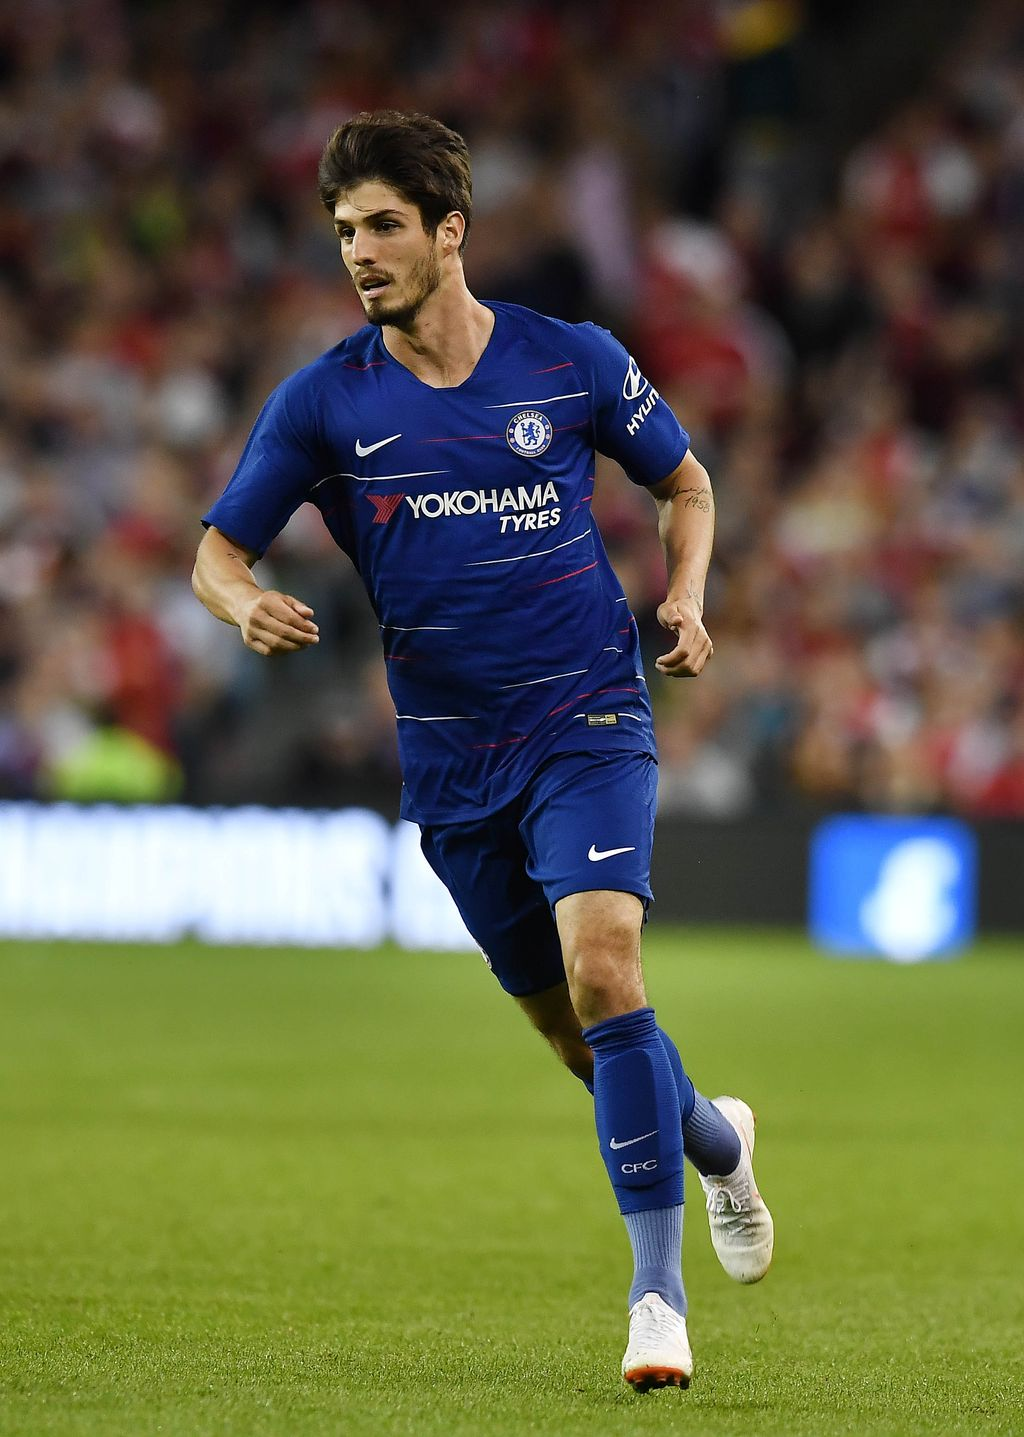 DUBLIN, IRELAND - AUGUST 01: Lucas Piazon of Chelsea during the Pre-season friendly International Champions Cup game between Arsenal and Chelsea at Aviva stadium on August 1, 2018 in Dublin, Ireland. (Photo by Charles McQuillan/Getty Images)